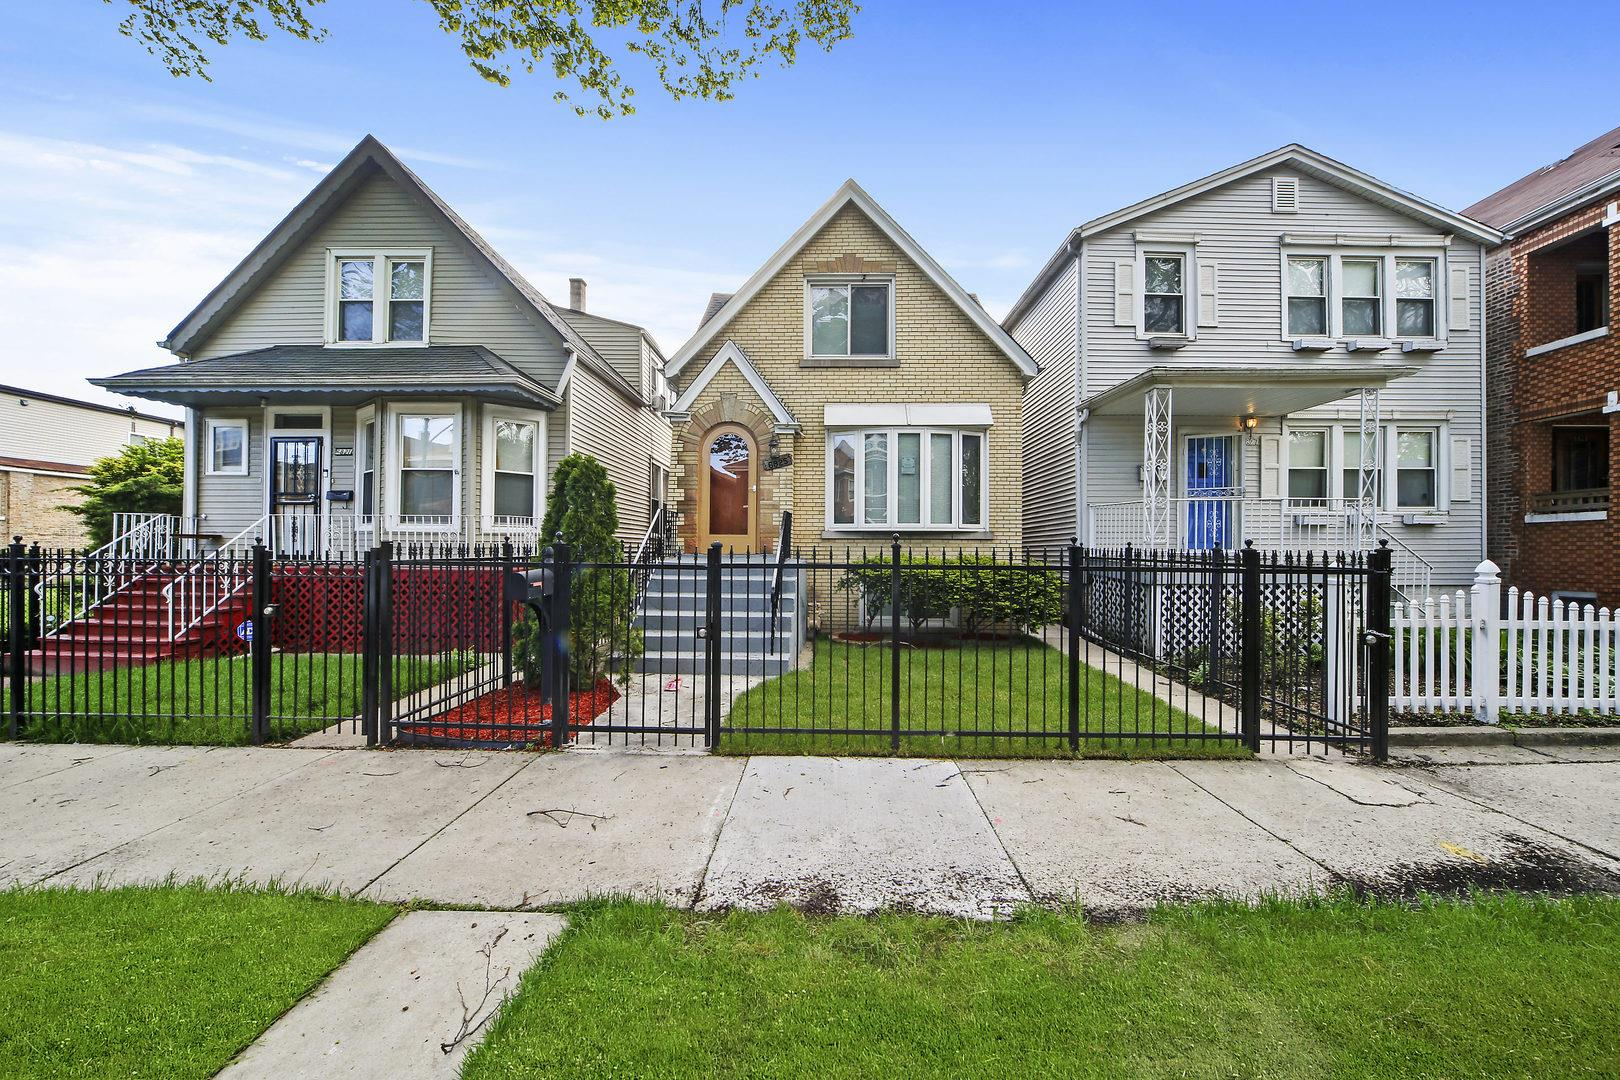 6825 S Rockwell Street, Chicago, IL 60629 - #: 10723878